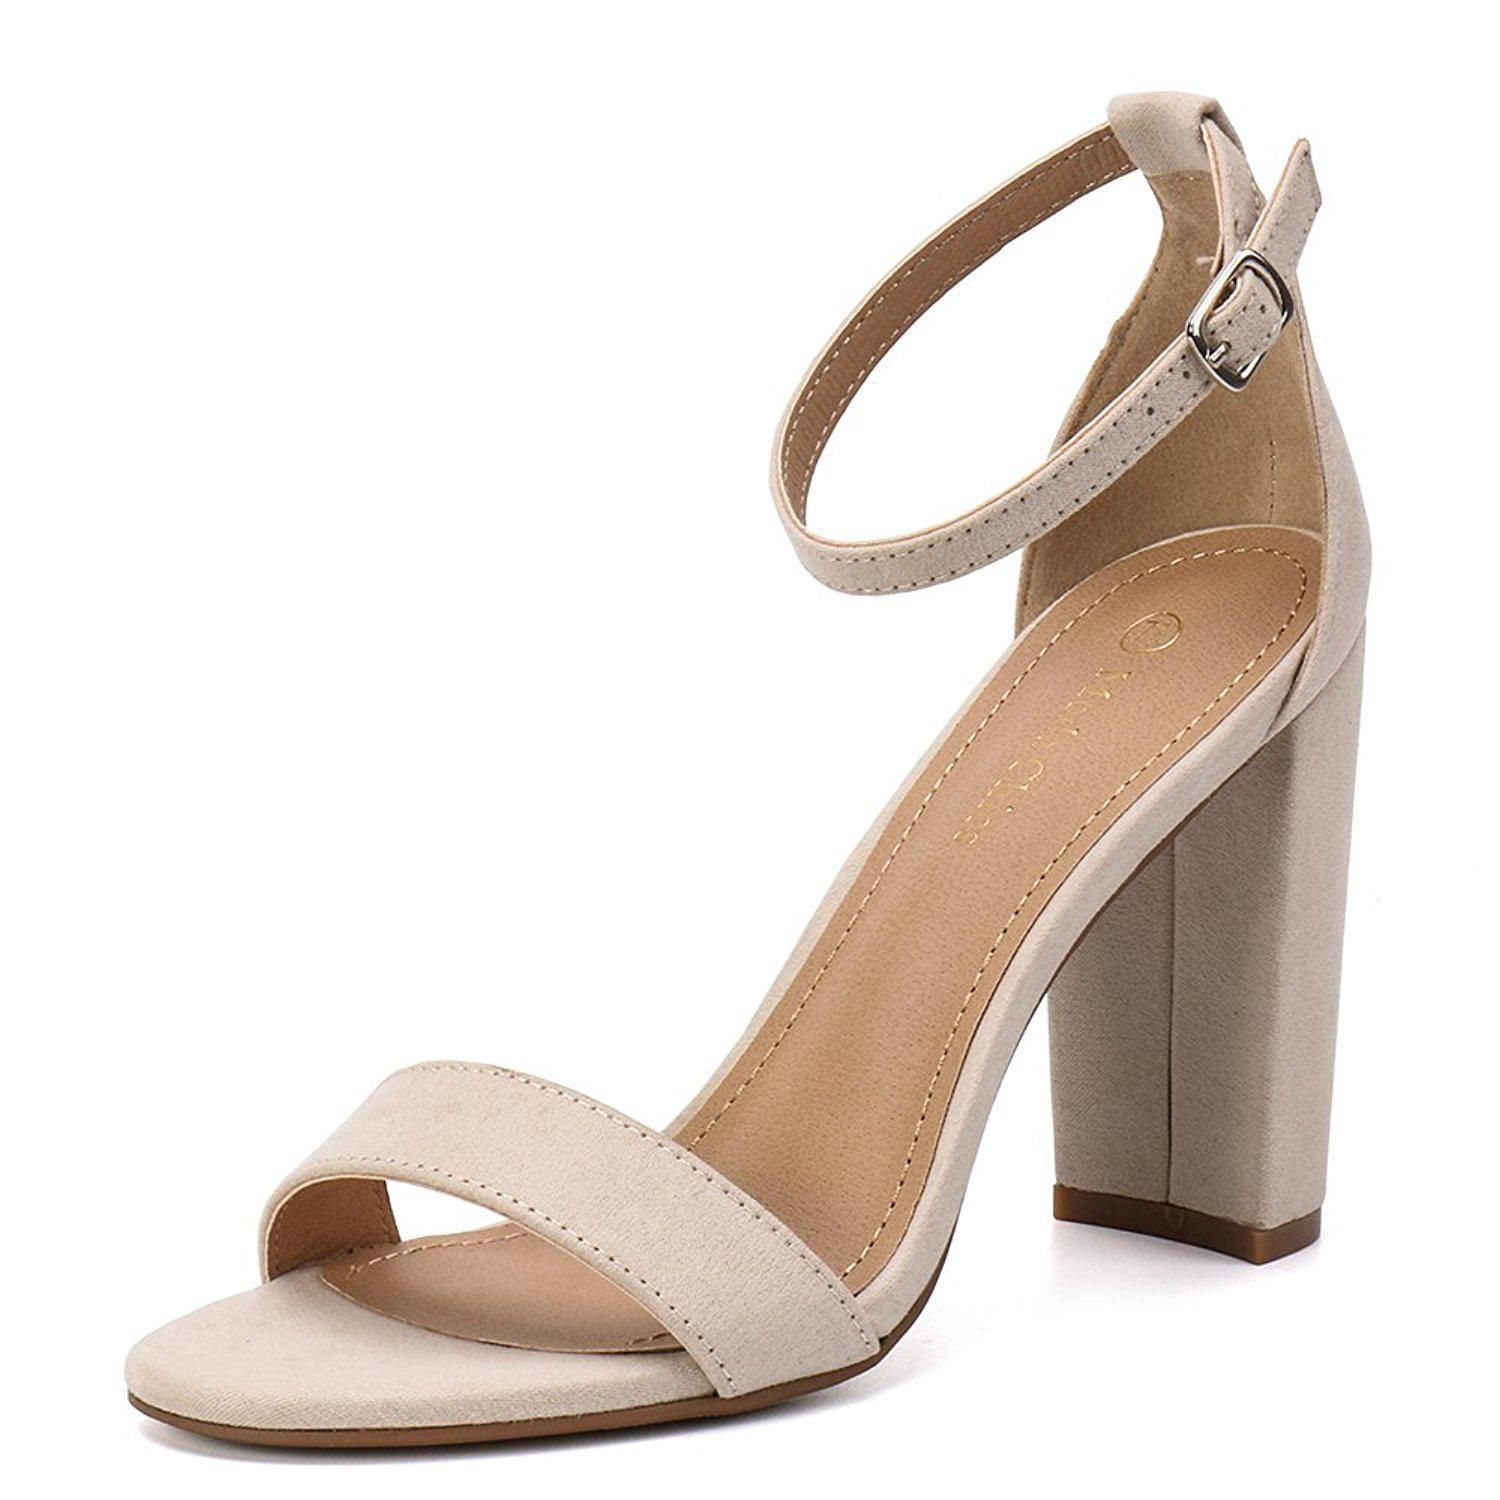 Moda Chics Womens 2 Inches Chunky Heel Sandals for, Nude